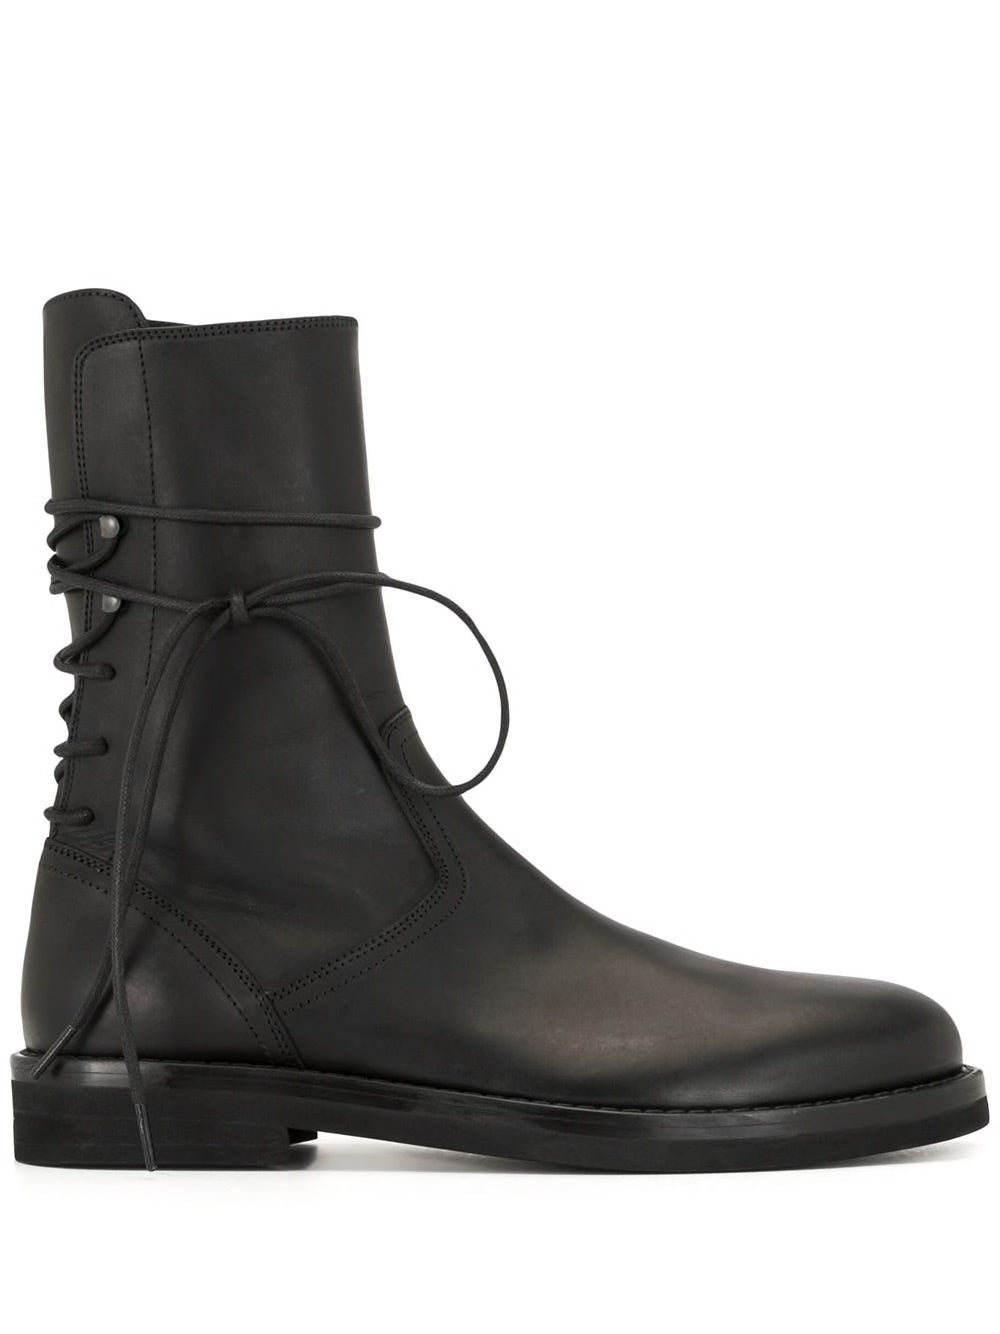 ANN DEMEULEMEESTER MEN CLASSIC BACK LACE UP BOOTS